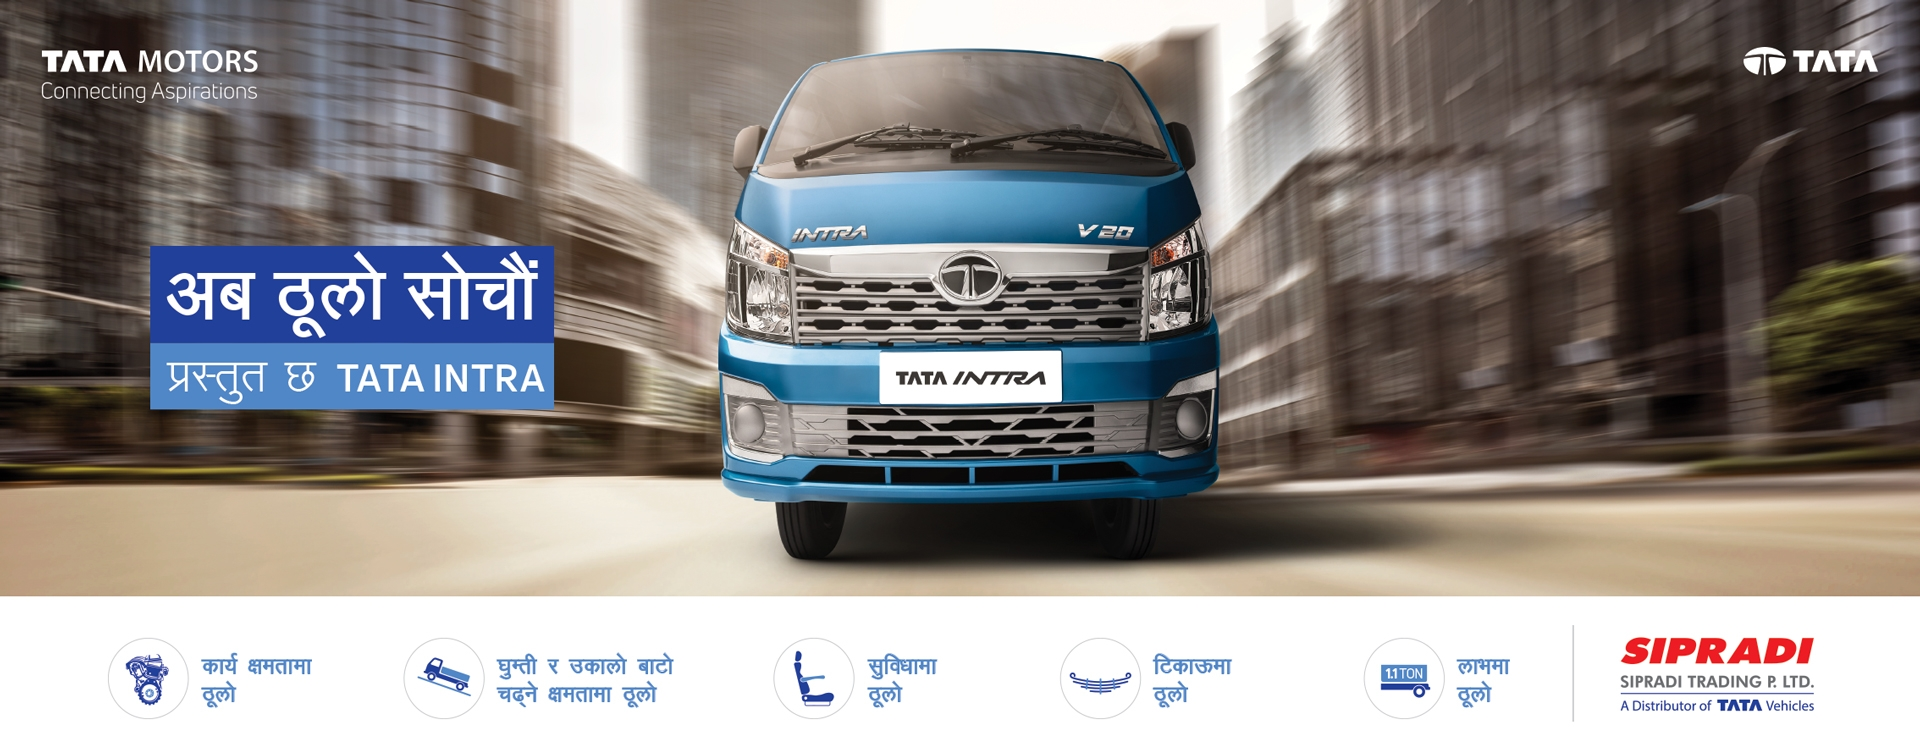 TATA Intra in Nepal